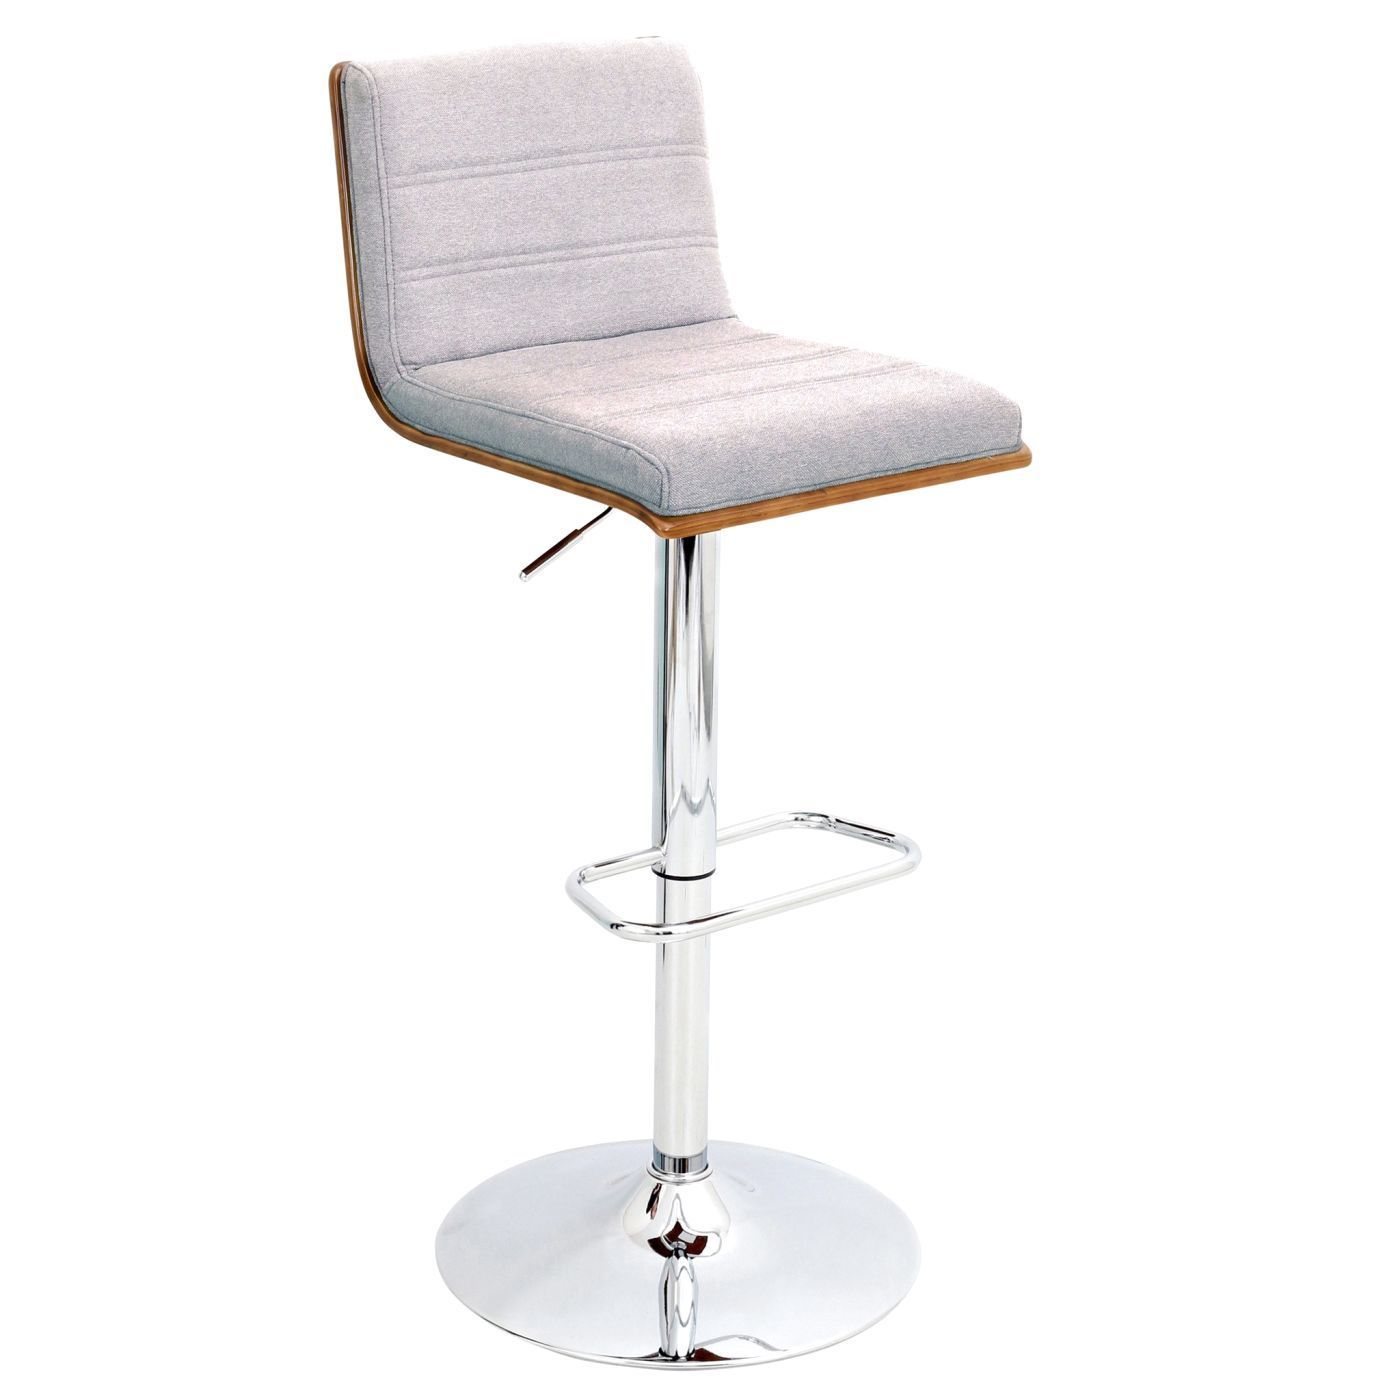 Astounding Bromi Design Lexi Adjustable Height Barstool White Walnut Caraccident5 Cool Chair Designs And Ideas Caraccident5Info